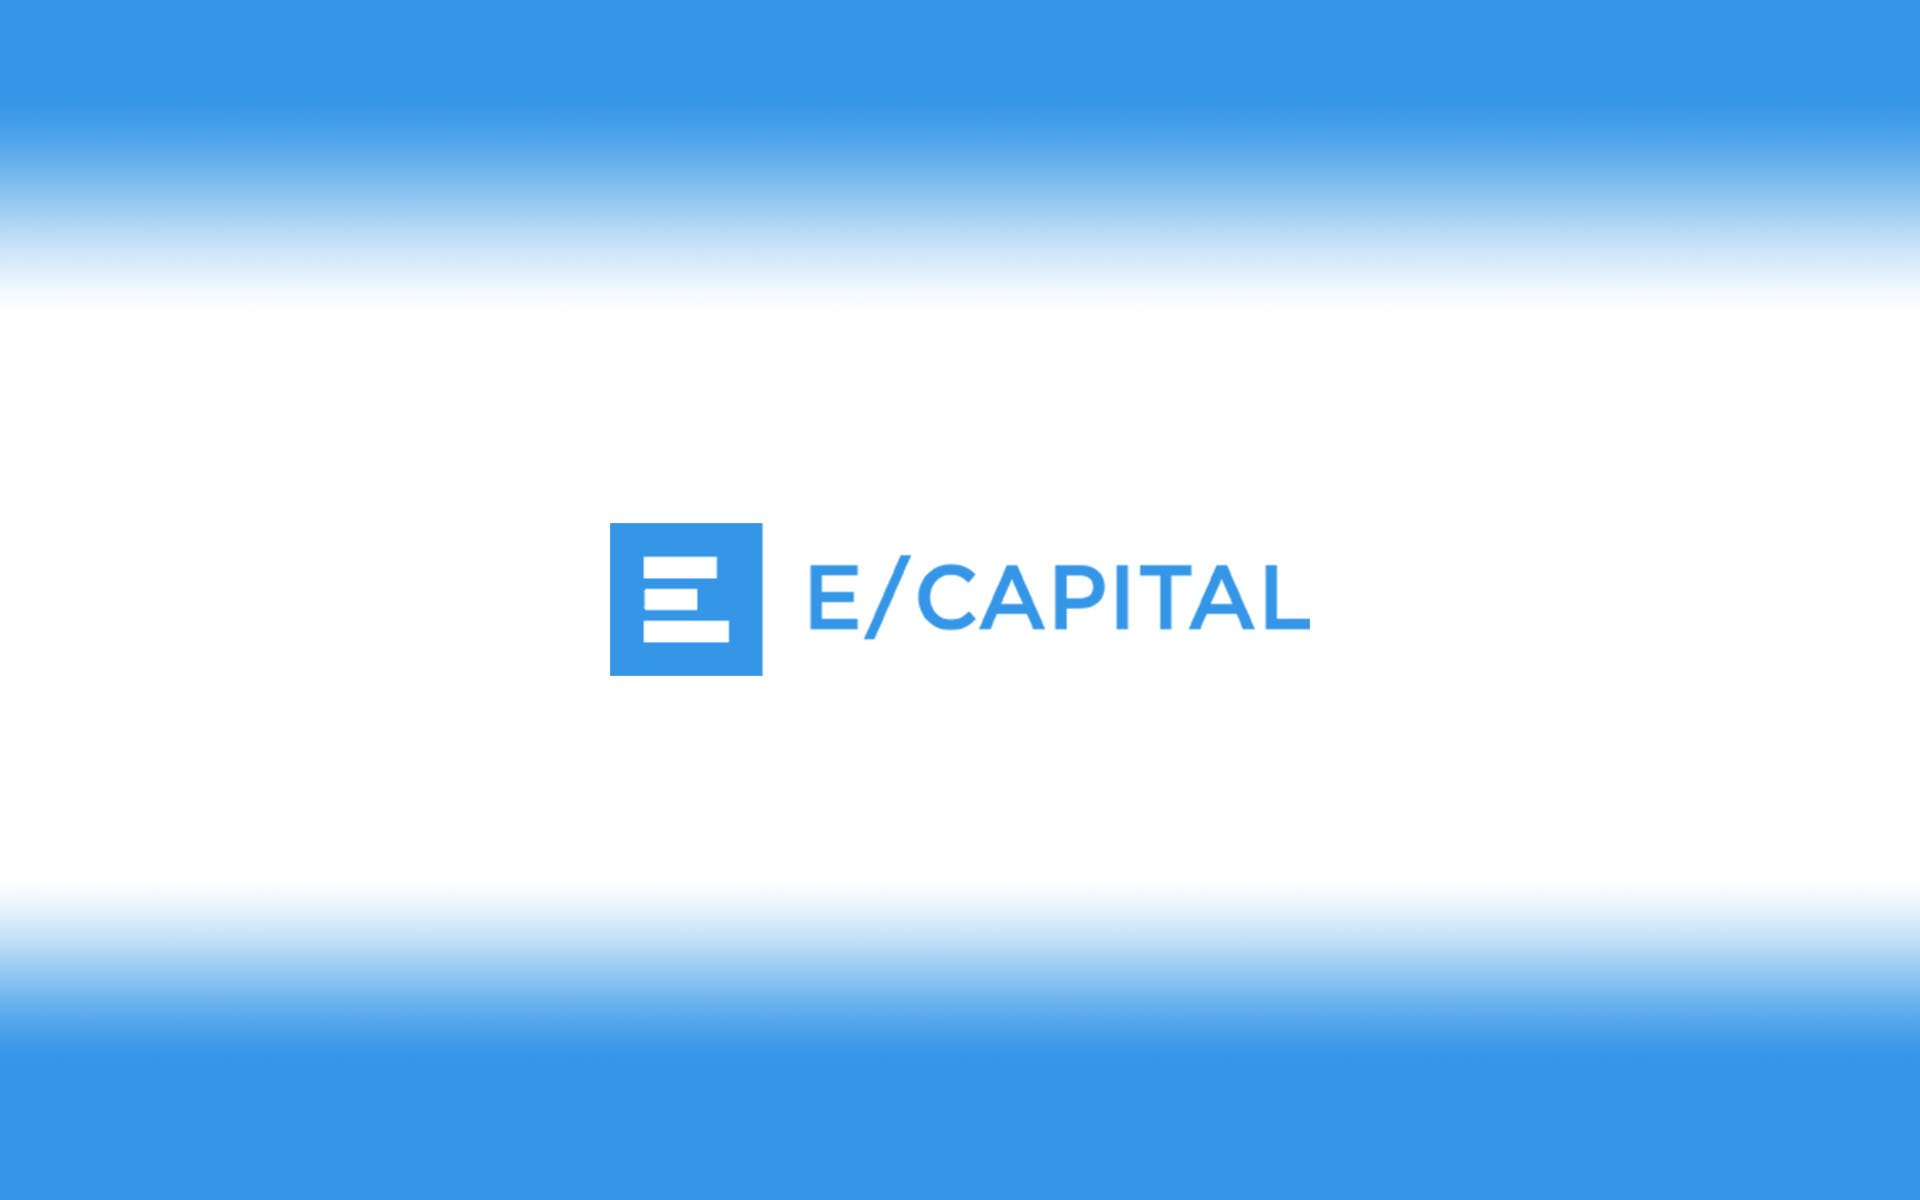 ECAPITAL.CO Launches Pre-Sale For ICO Backed By Revolutionary Cryptocurrency Exchange That Will Include eWallet & International Prepaid Card